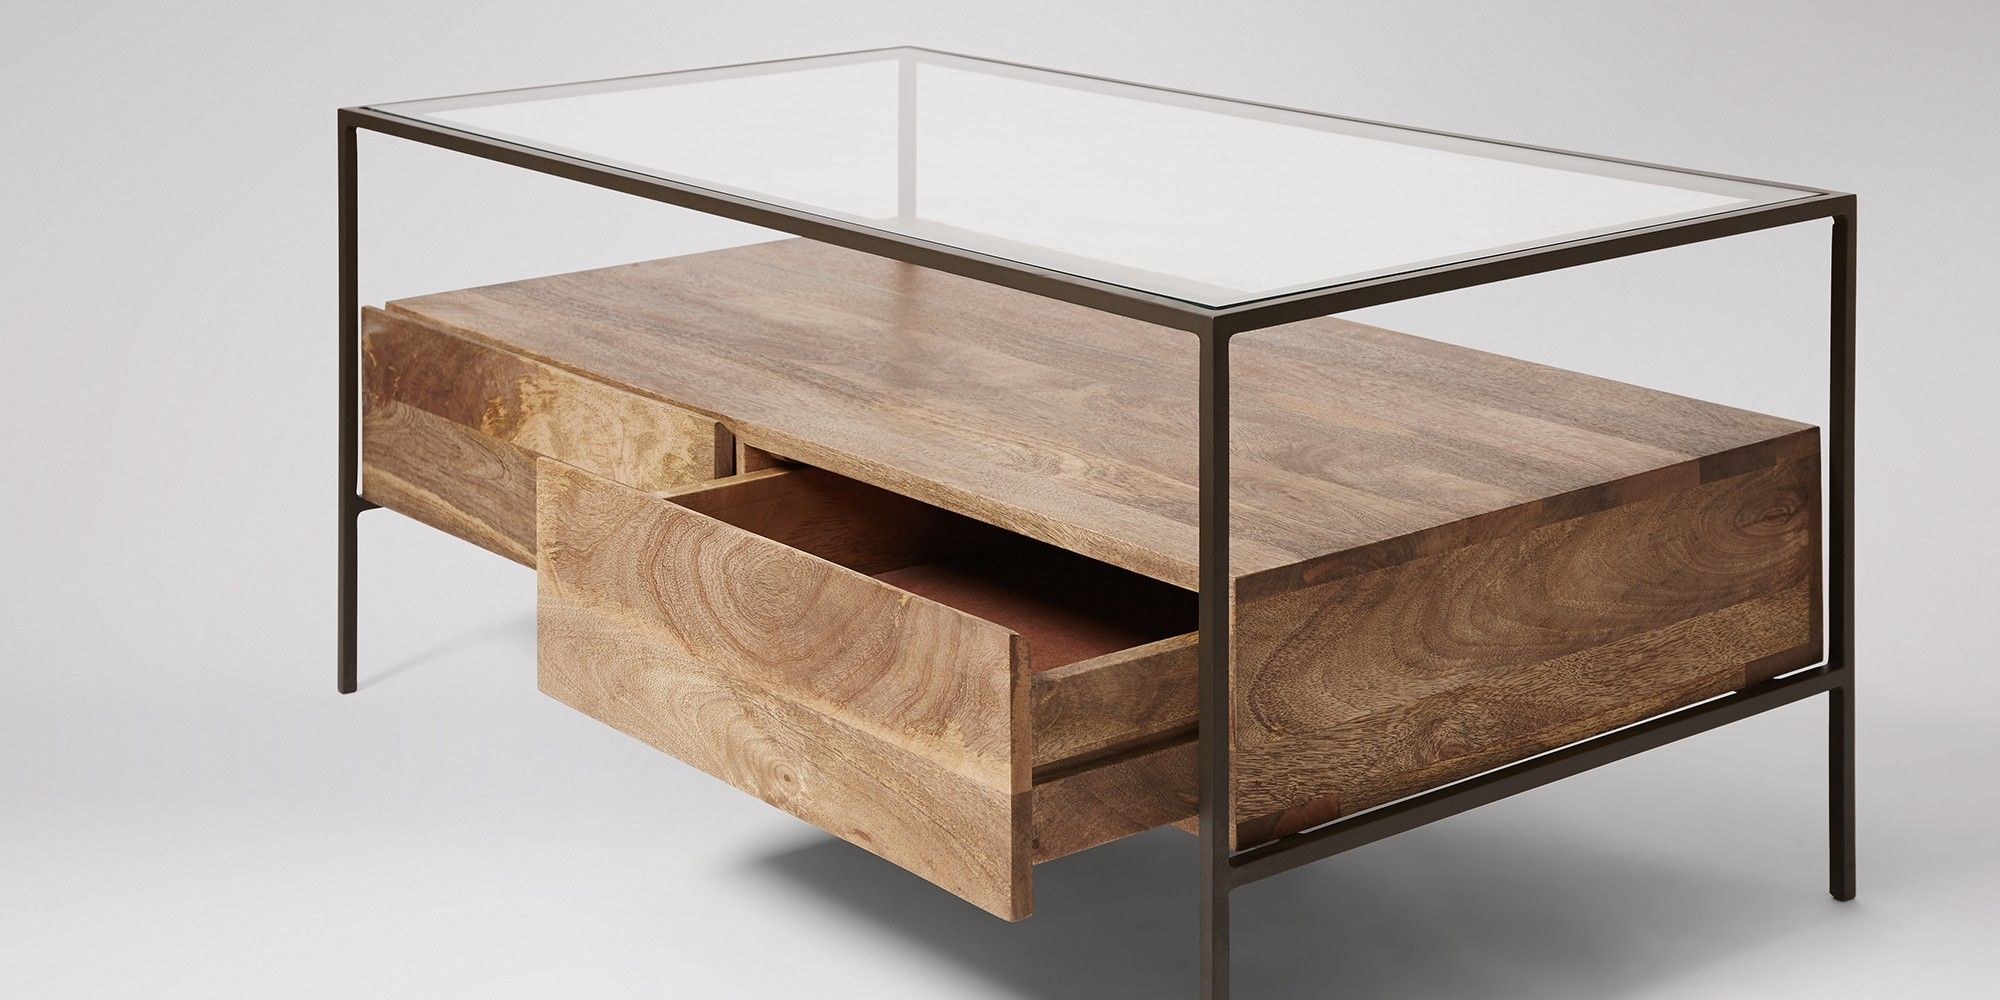 Mackay Coffee Table Swoon Editions Coffee Table Mid Century Style Coffee Table Contemporary Coffee Table [ 1000 x 2000 Pixel ]